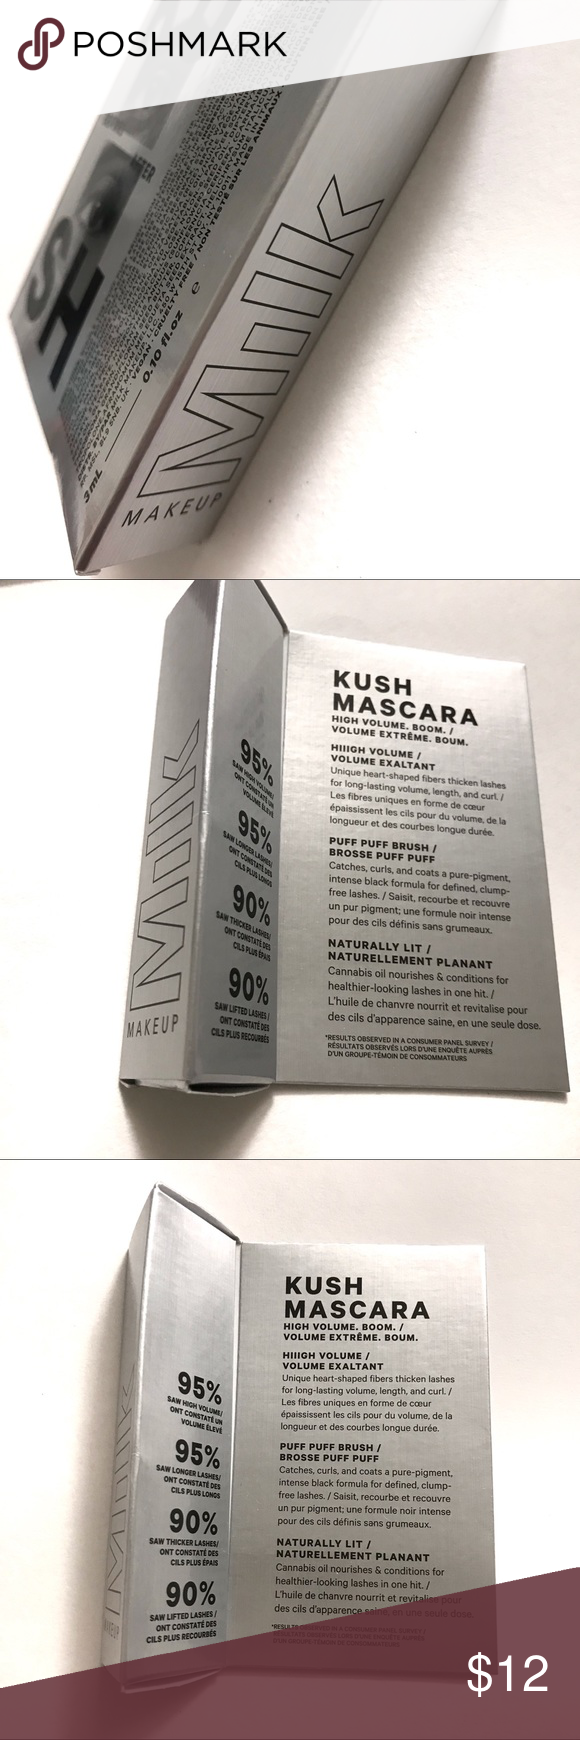 5 for 25 milk makeup kush mascara sample Milk makeup